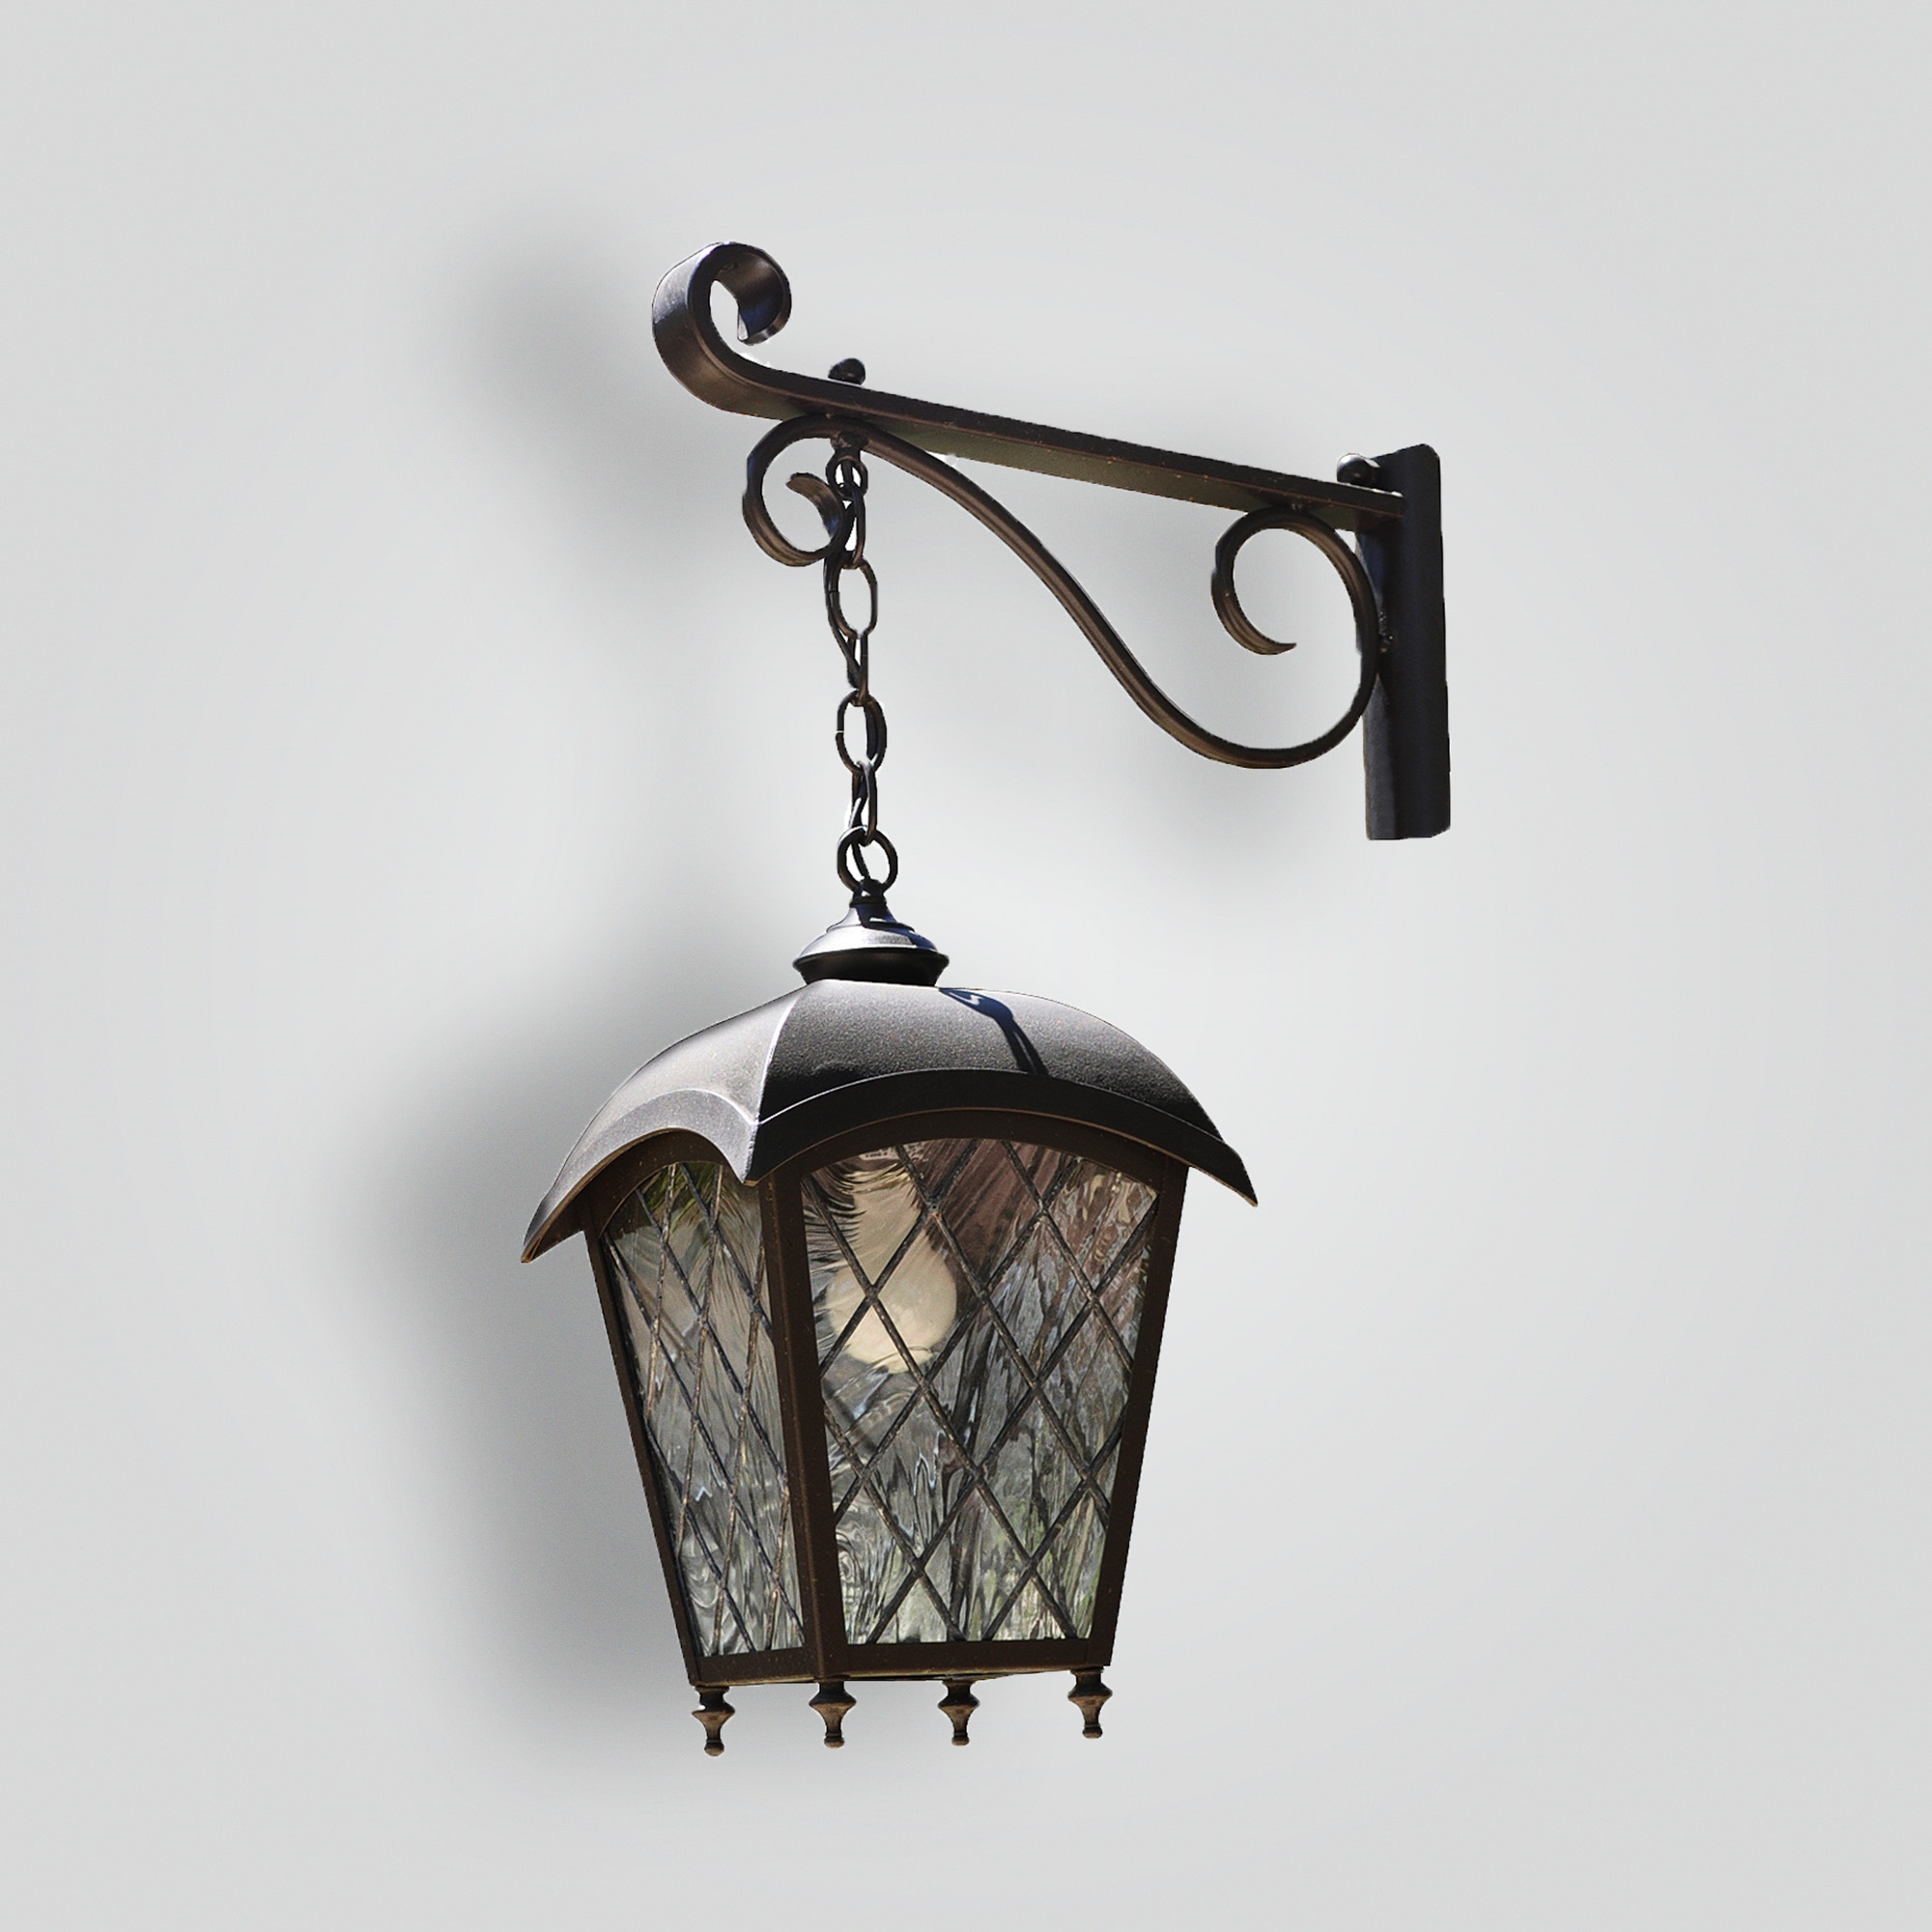 185-mb1-jc-p-sh On Arm Leaded Glass Lantern On Decorative Forged Arm Powdercoat Finish – ADG Lighting Collection